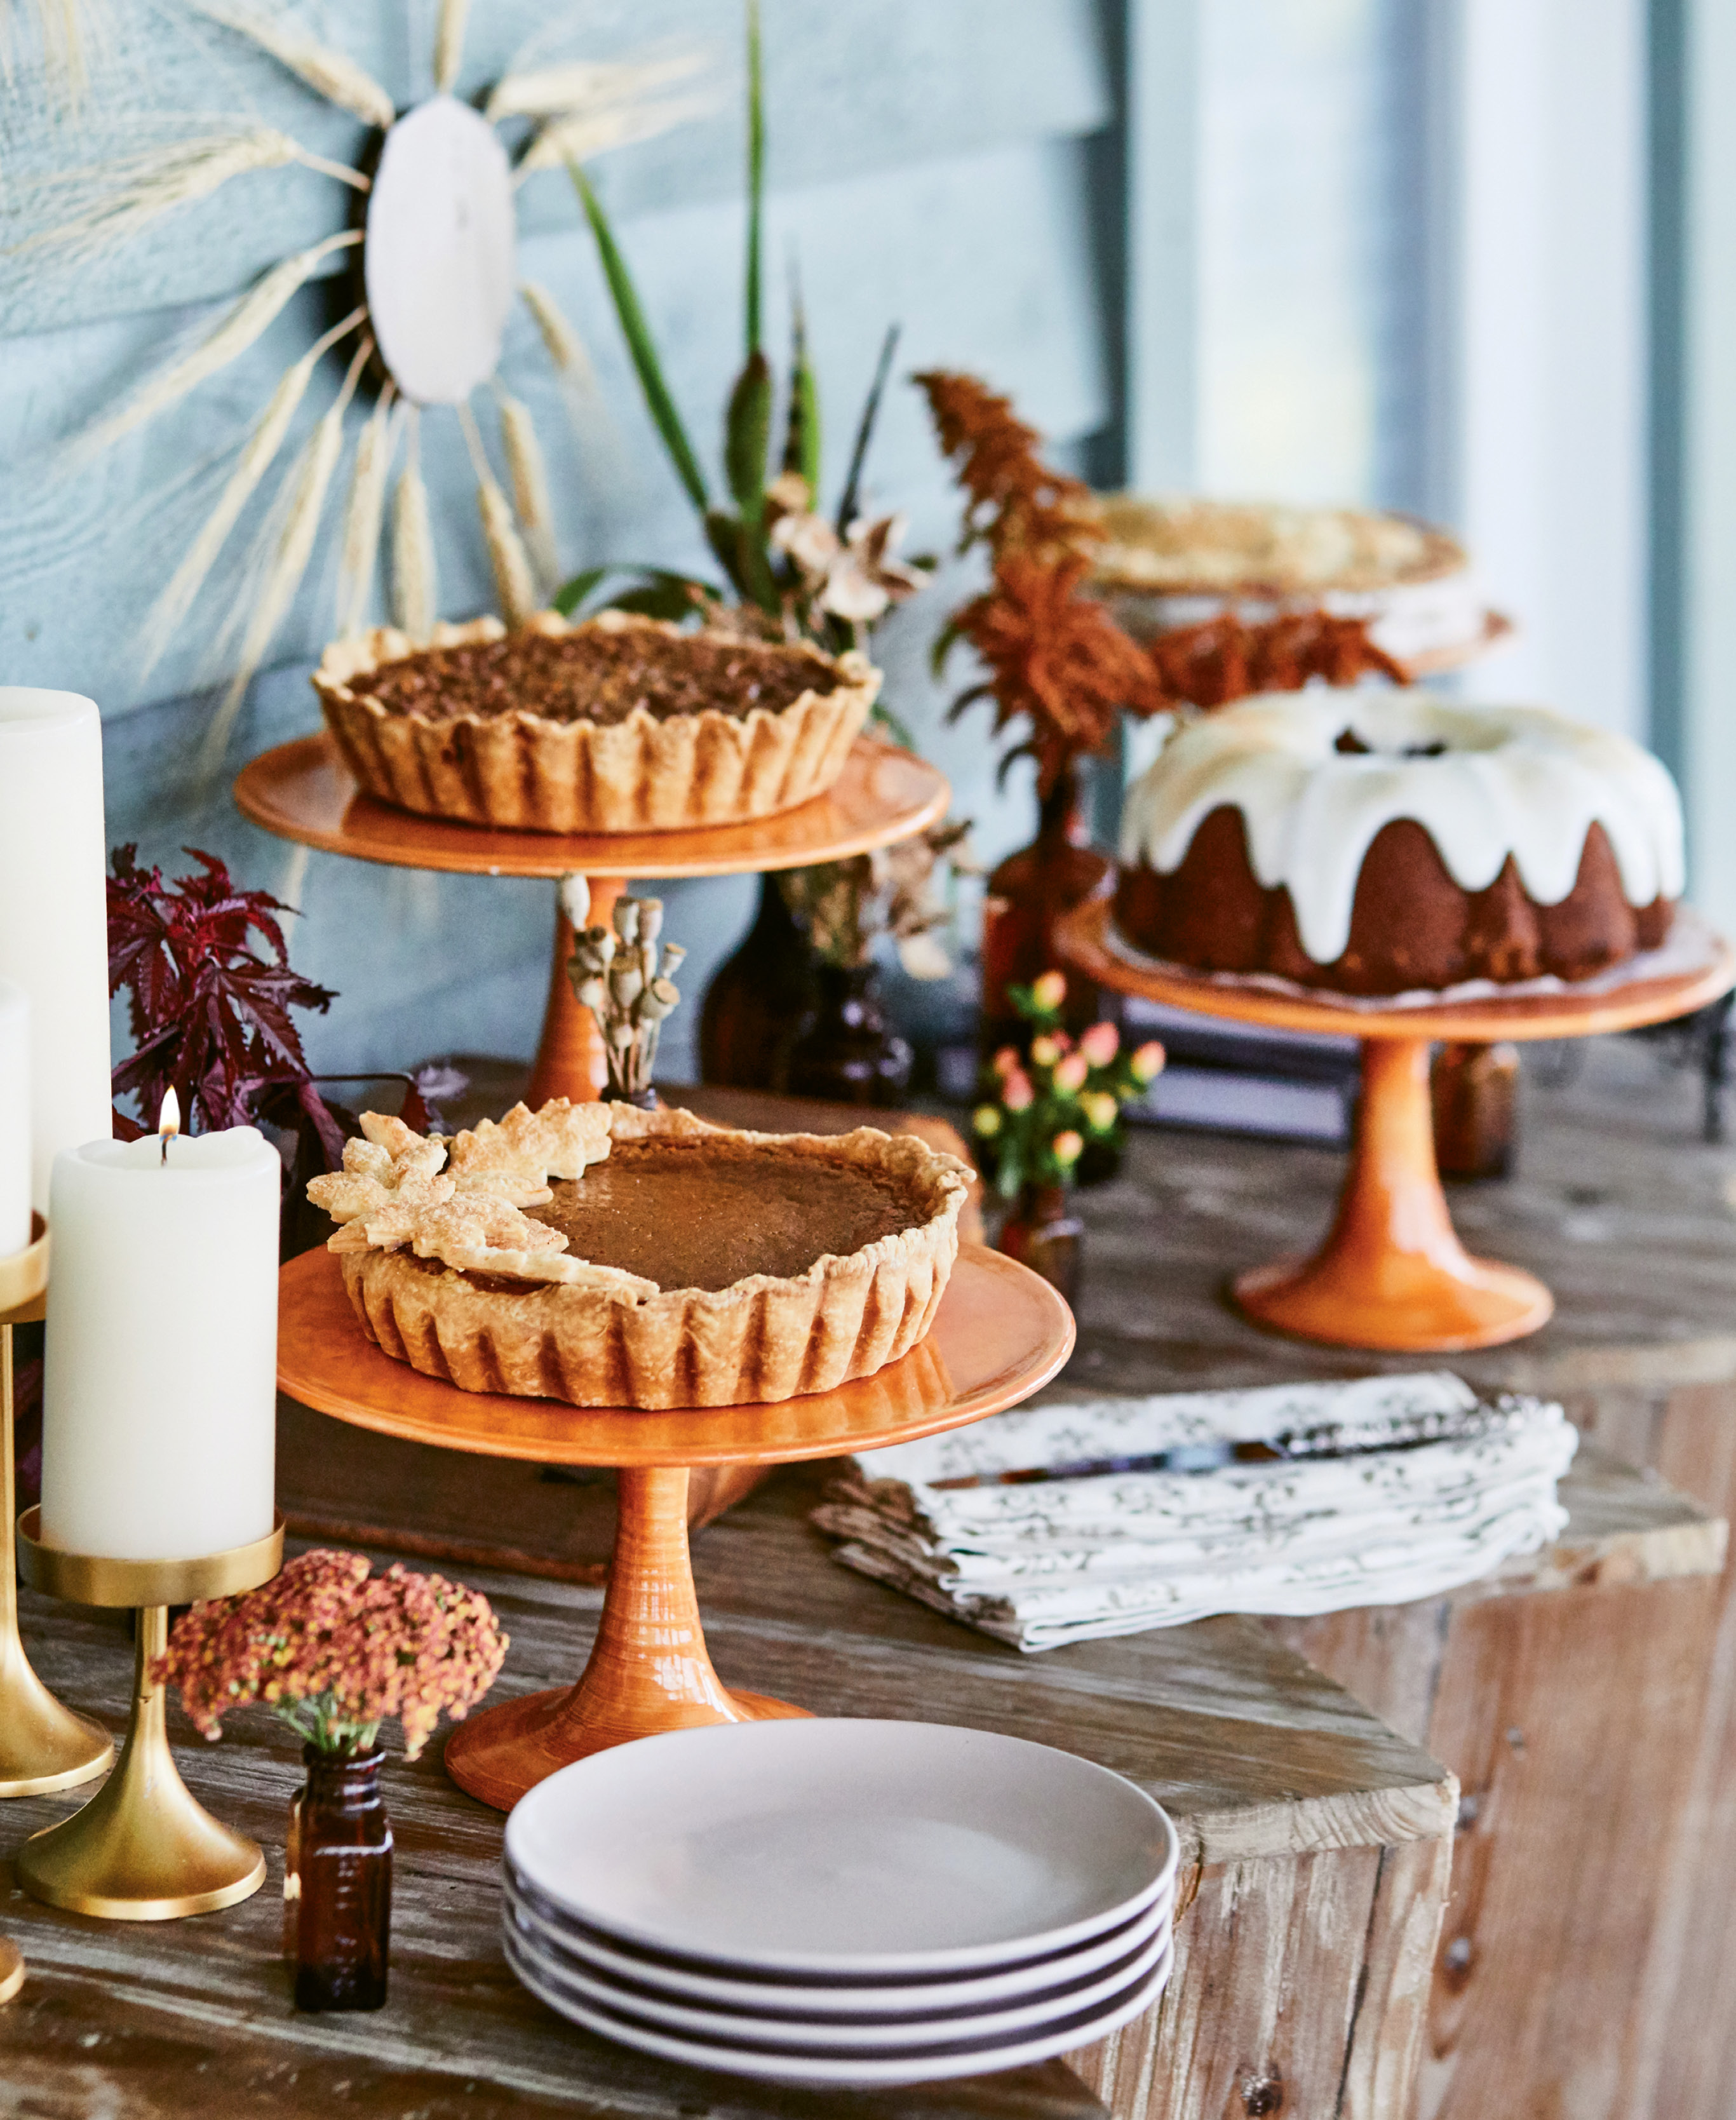 Lisa created a special dessert station and placed the confections at varying heights.